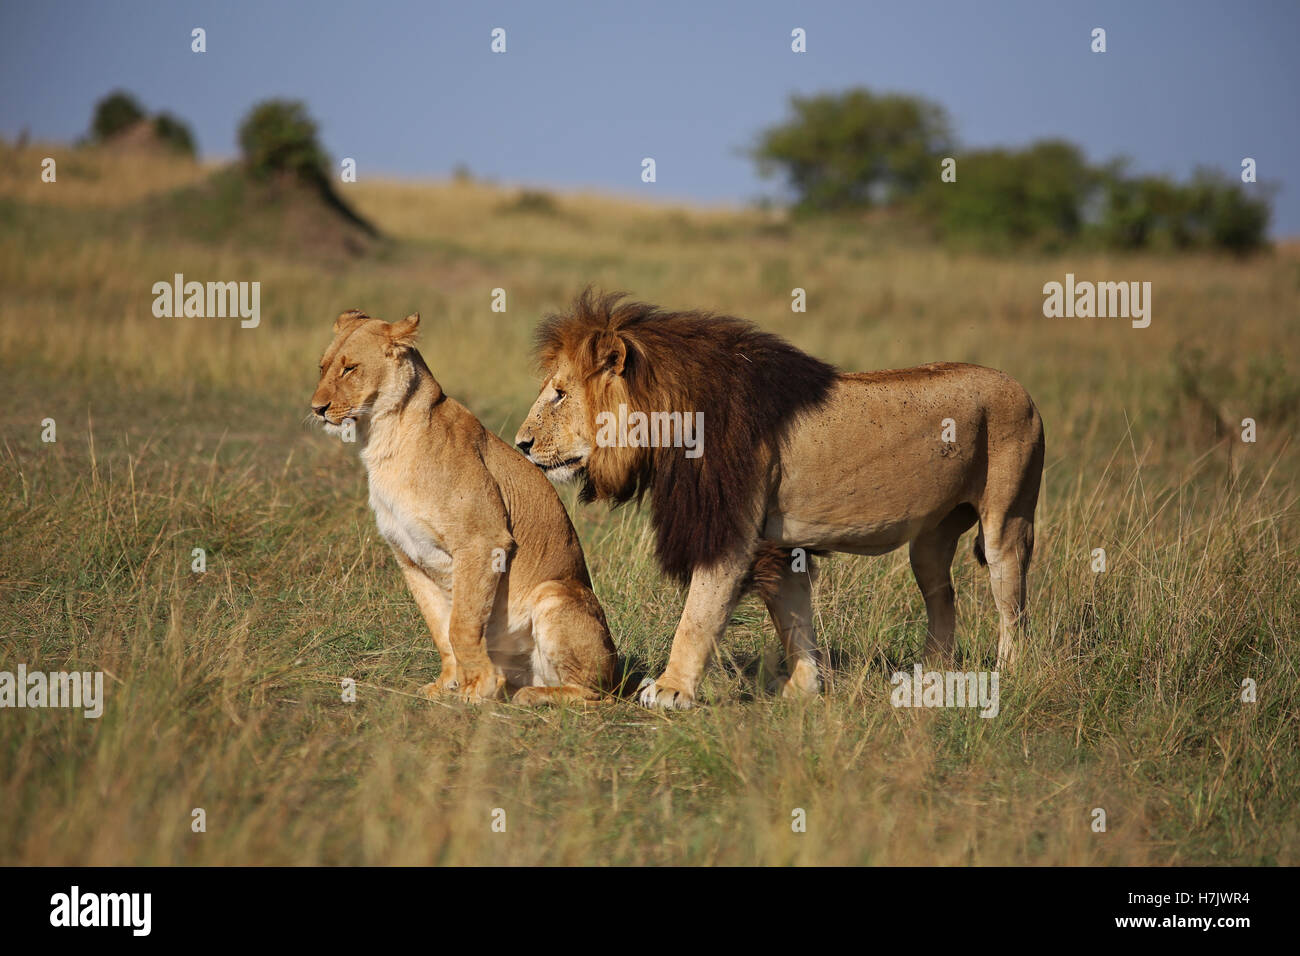 Pair of lions in Masai Mara, Kenya. - Stock Image